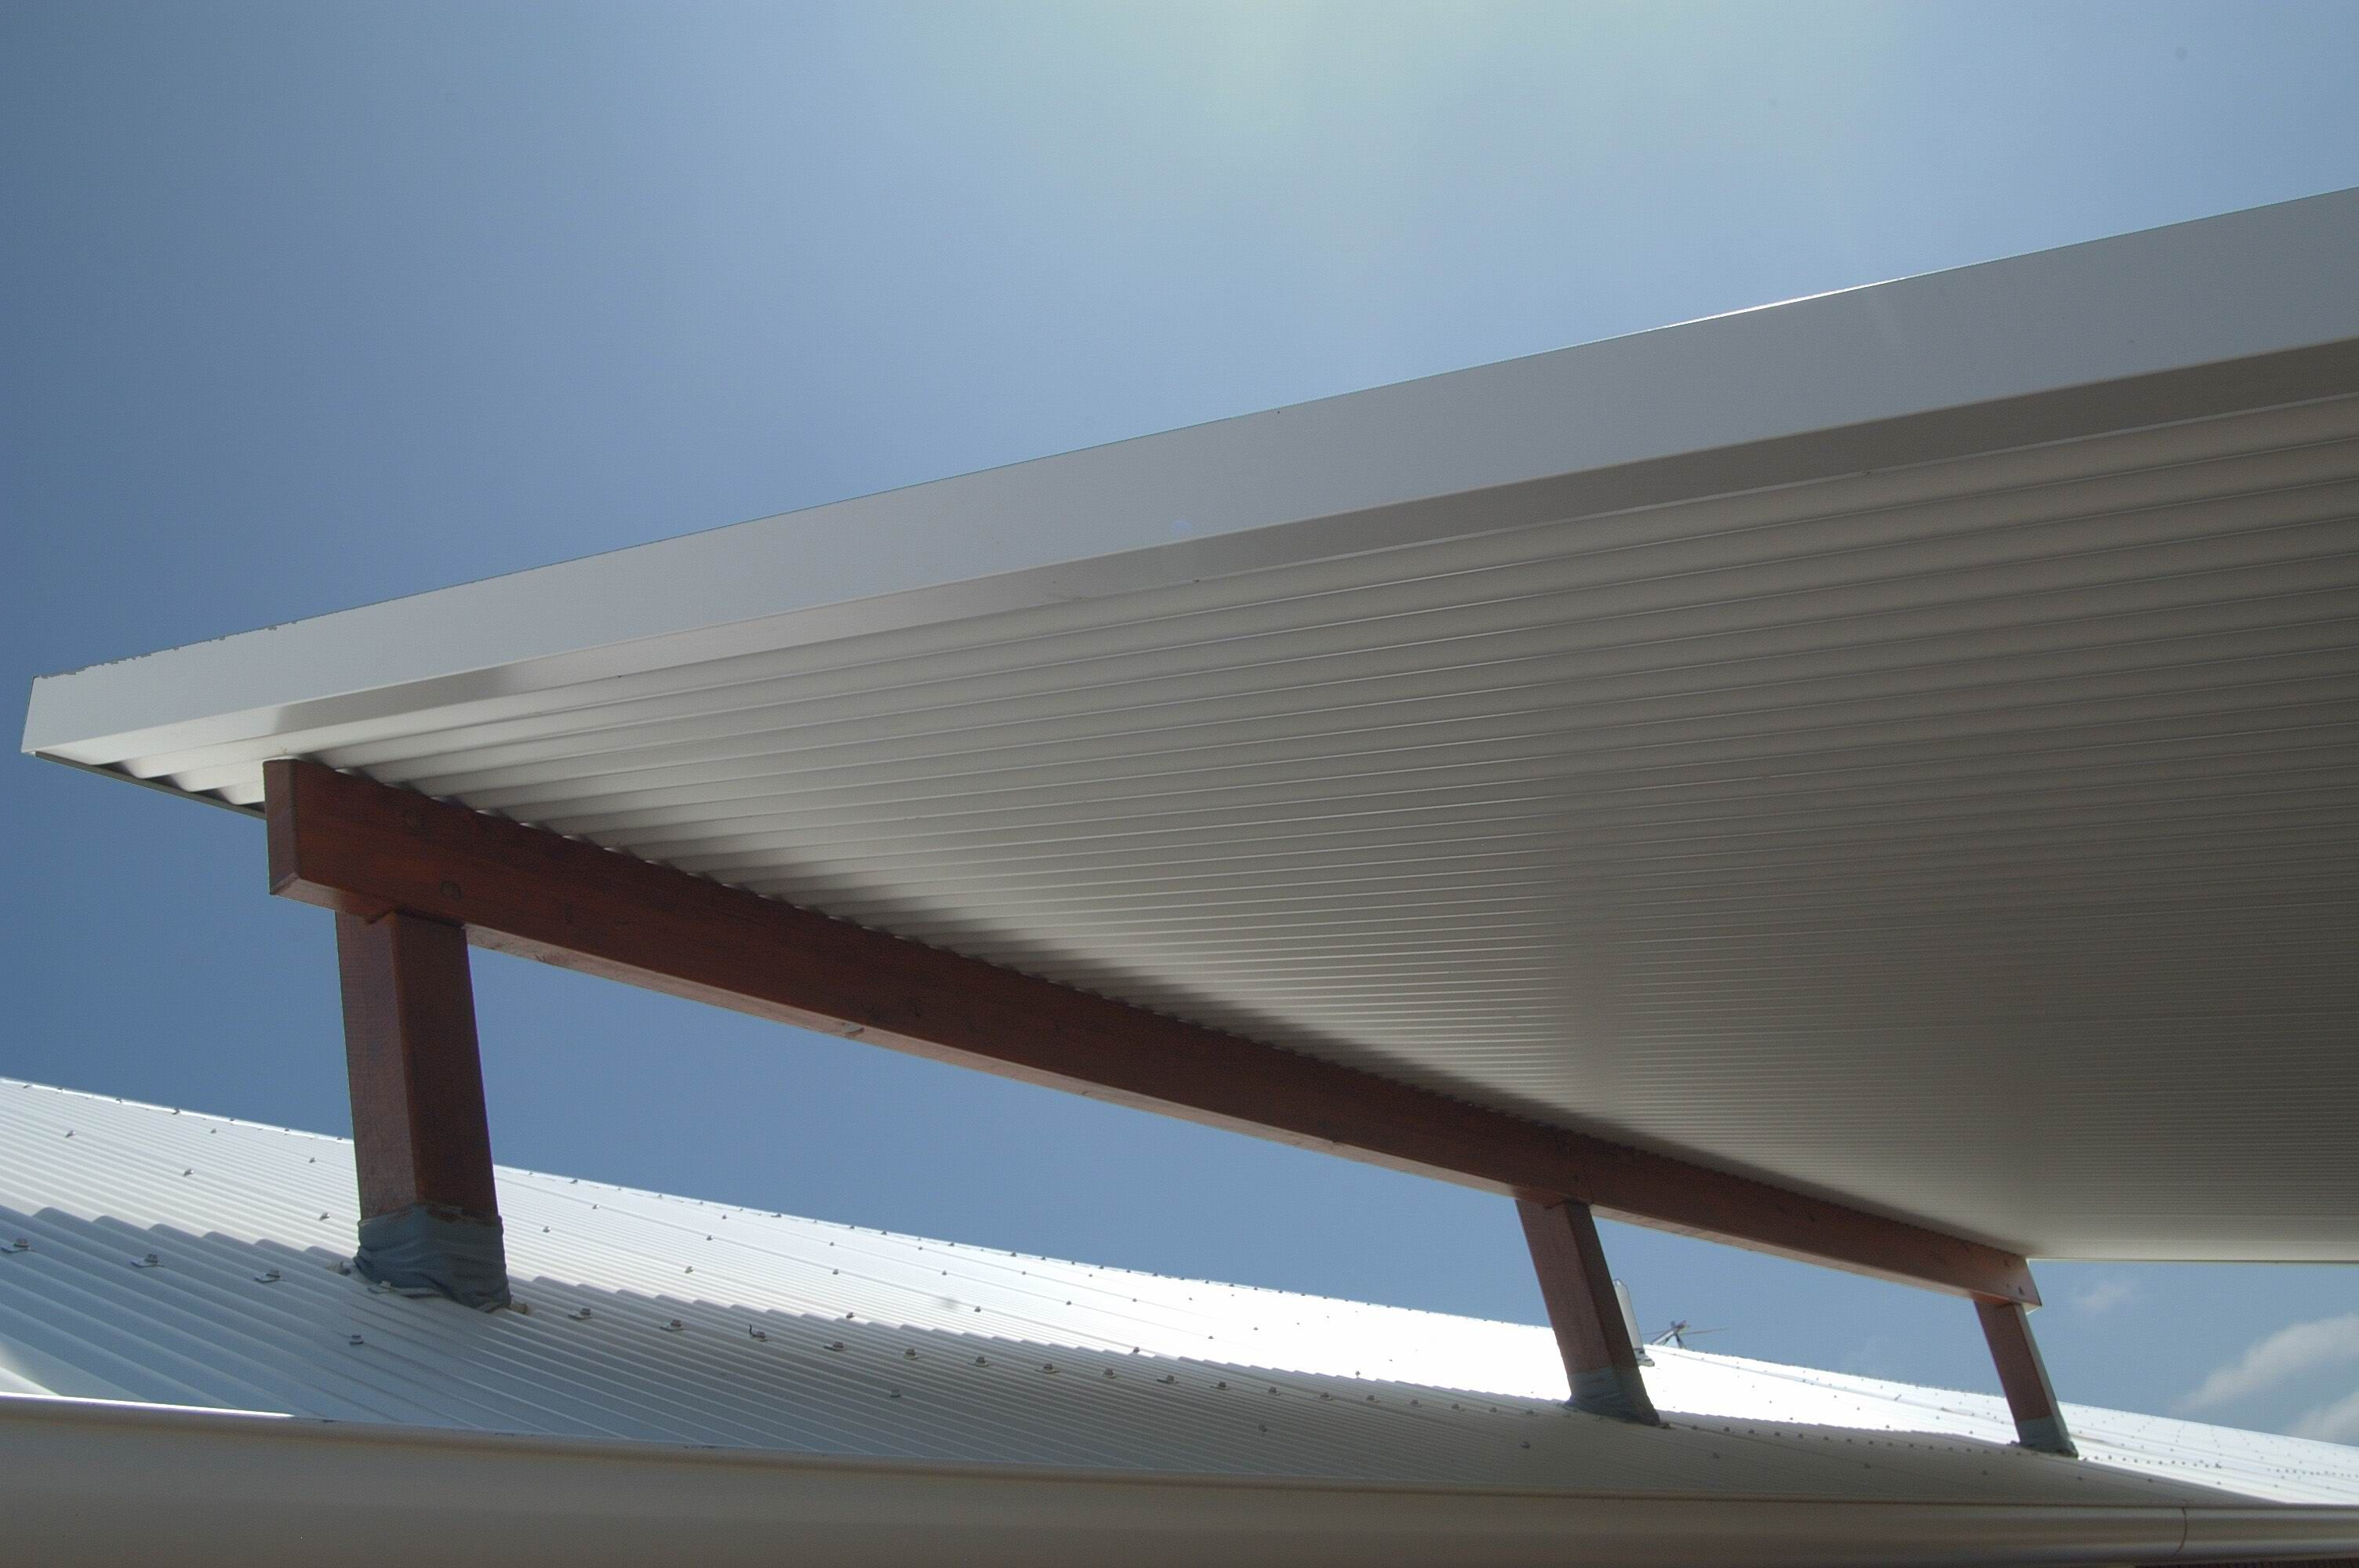 Add A Roof To Your Deck With A Flyer Over Roof. Ritek Roof Panels Are